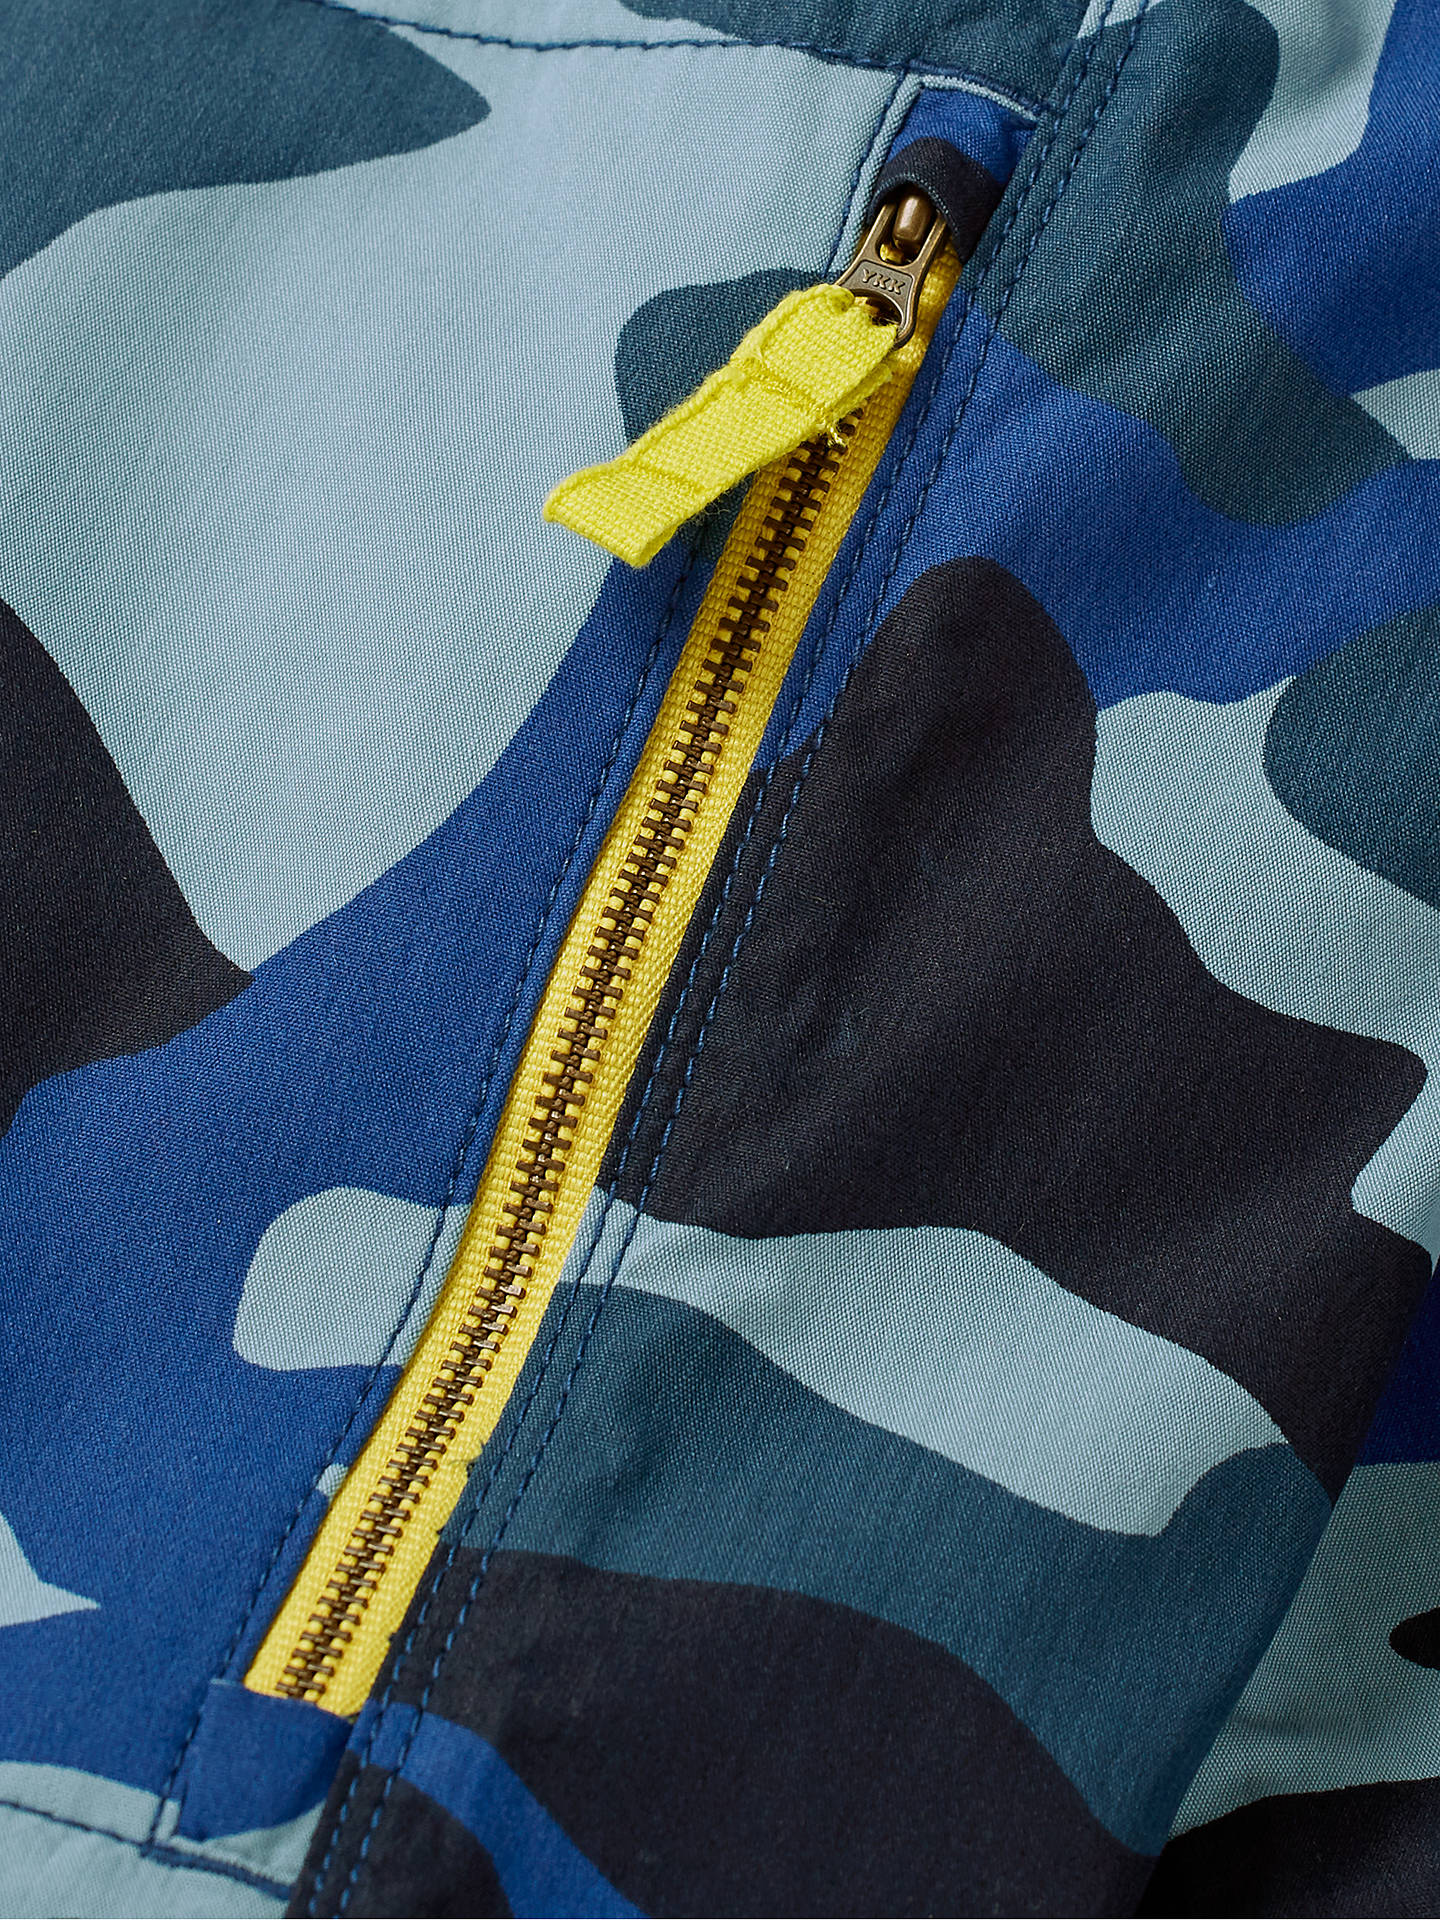 7f82b2c0d ... Buy Mini Boden Boys' Zip Off Techno Trousers, Blue Camouflage, 7 years  Online